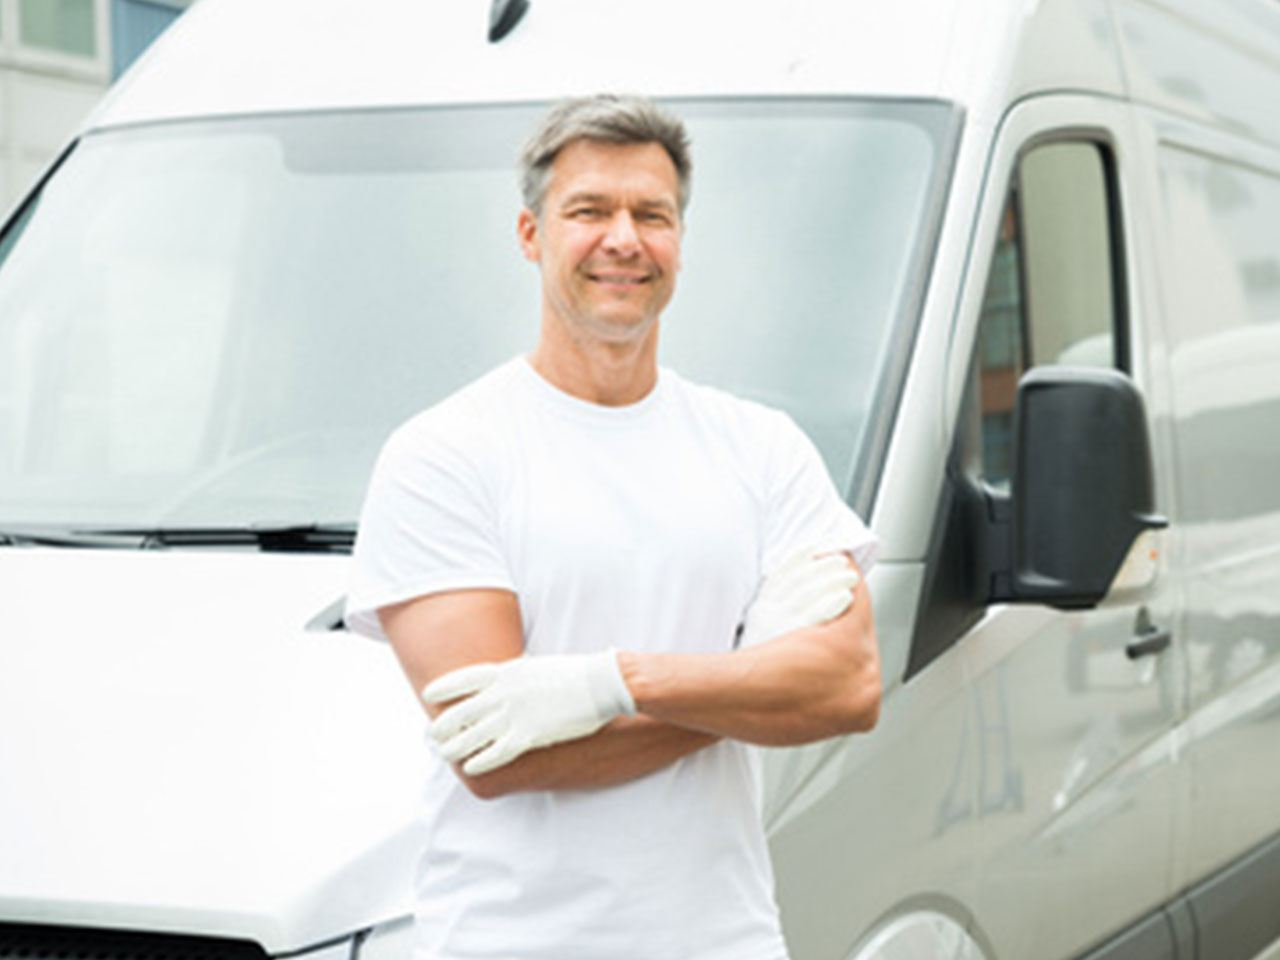 2. Painter-With-Arms-Crossed-In-Front-Of-Van